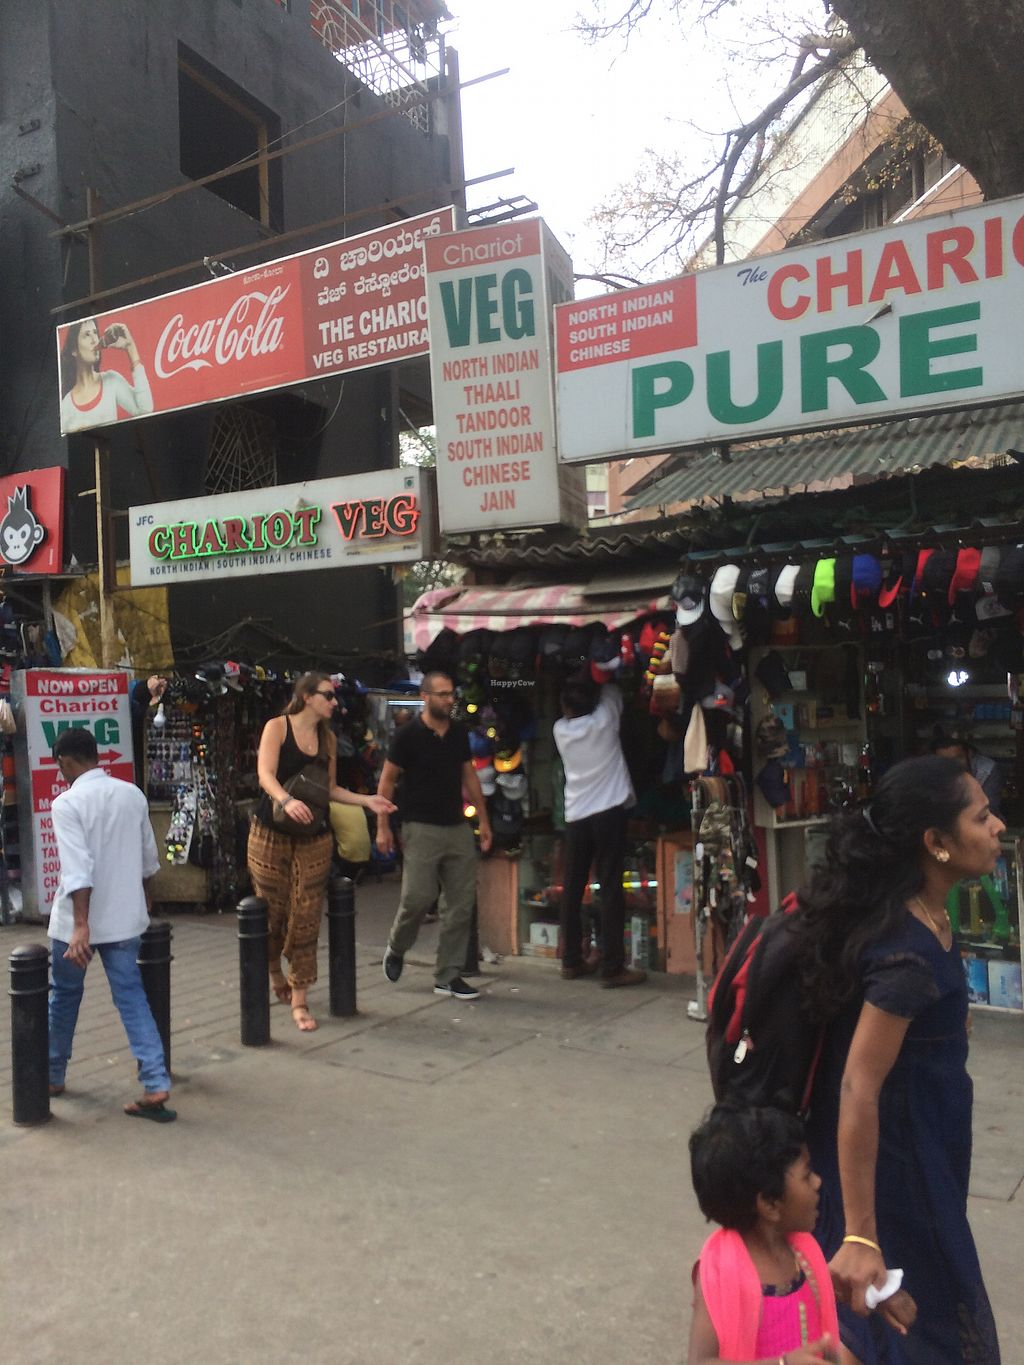 """Photo of The Chariot Pure Vegetarian  by <a href=""""/members/profile/Yo5h"""">Yo5h</a> <br/>Sign on street <br/> February 12, 2018  - <a href='/contact/abuse/image/111822/358300'>Report</a>"""